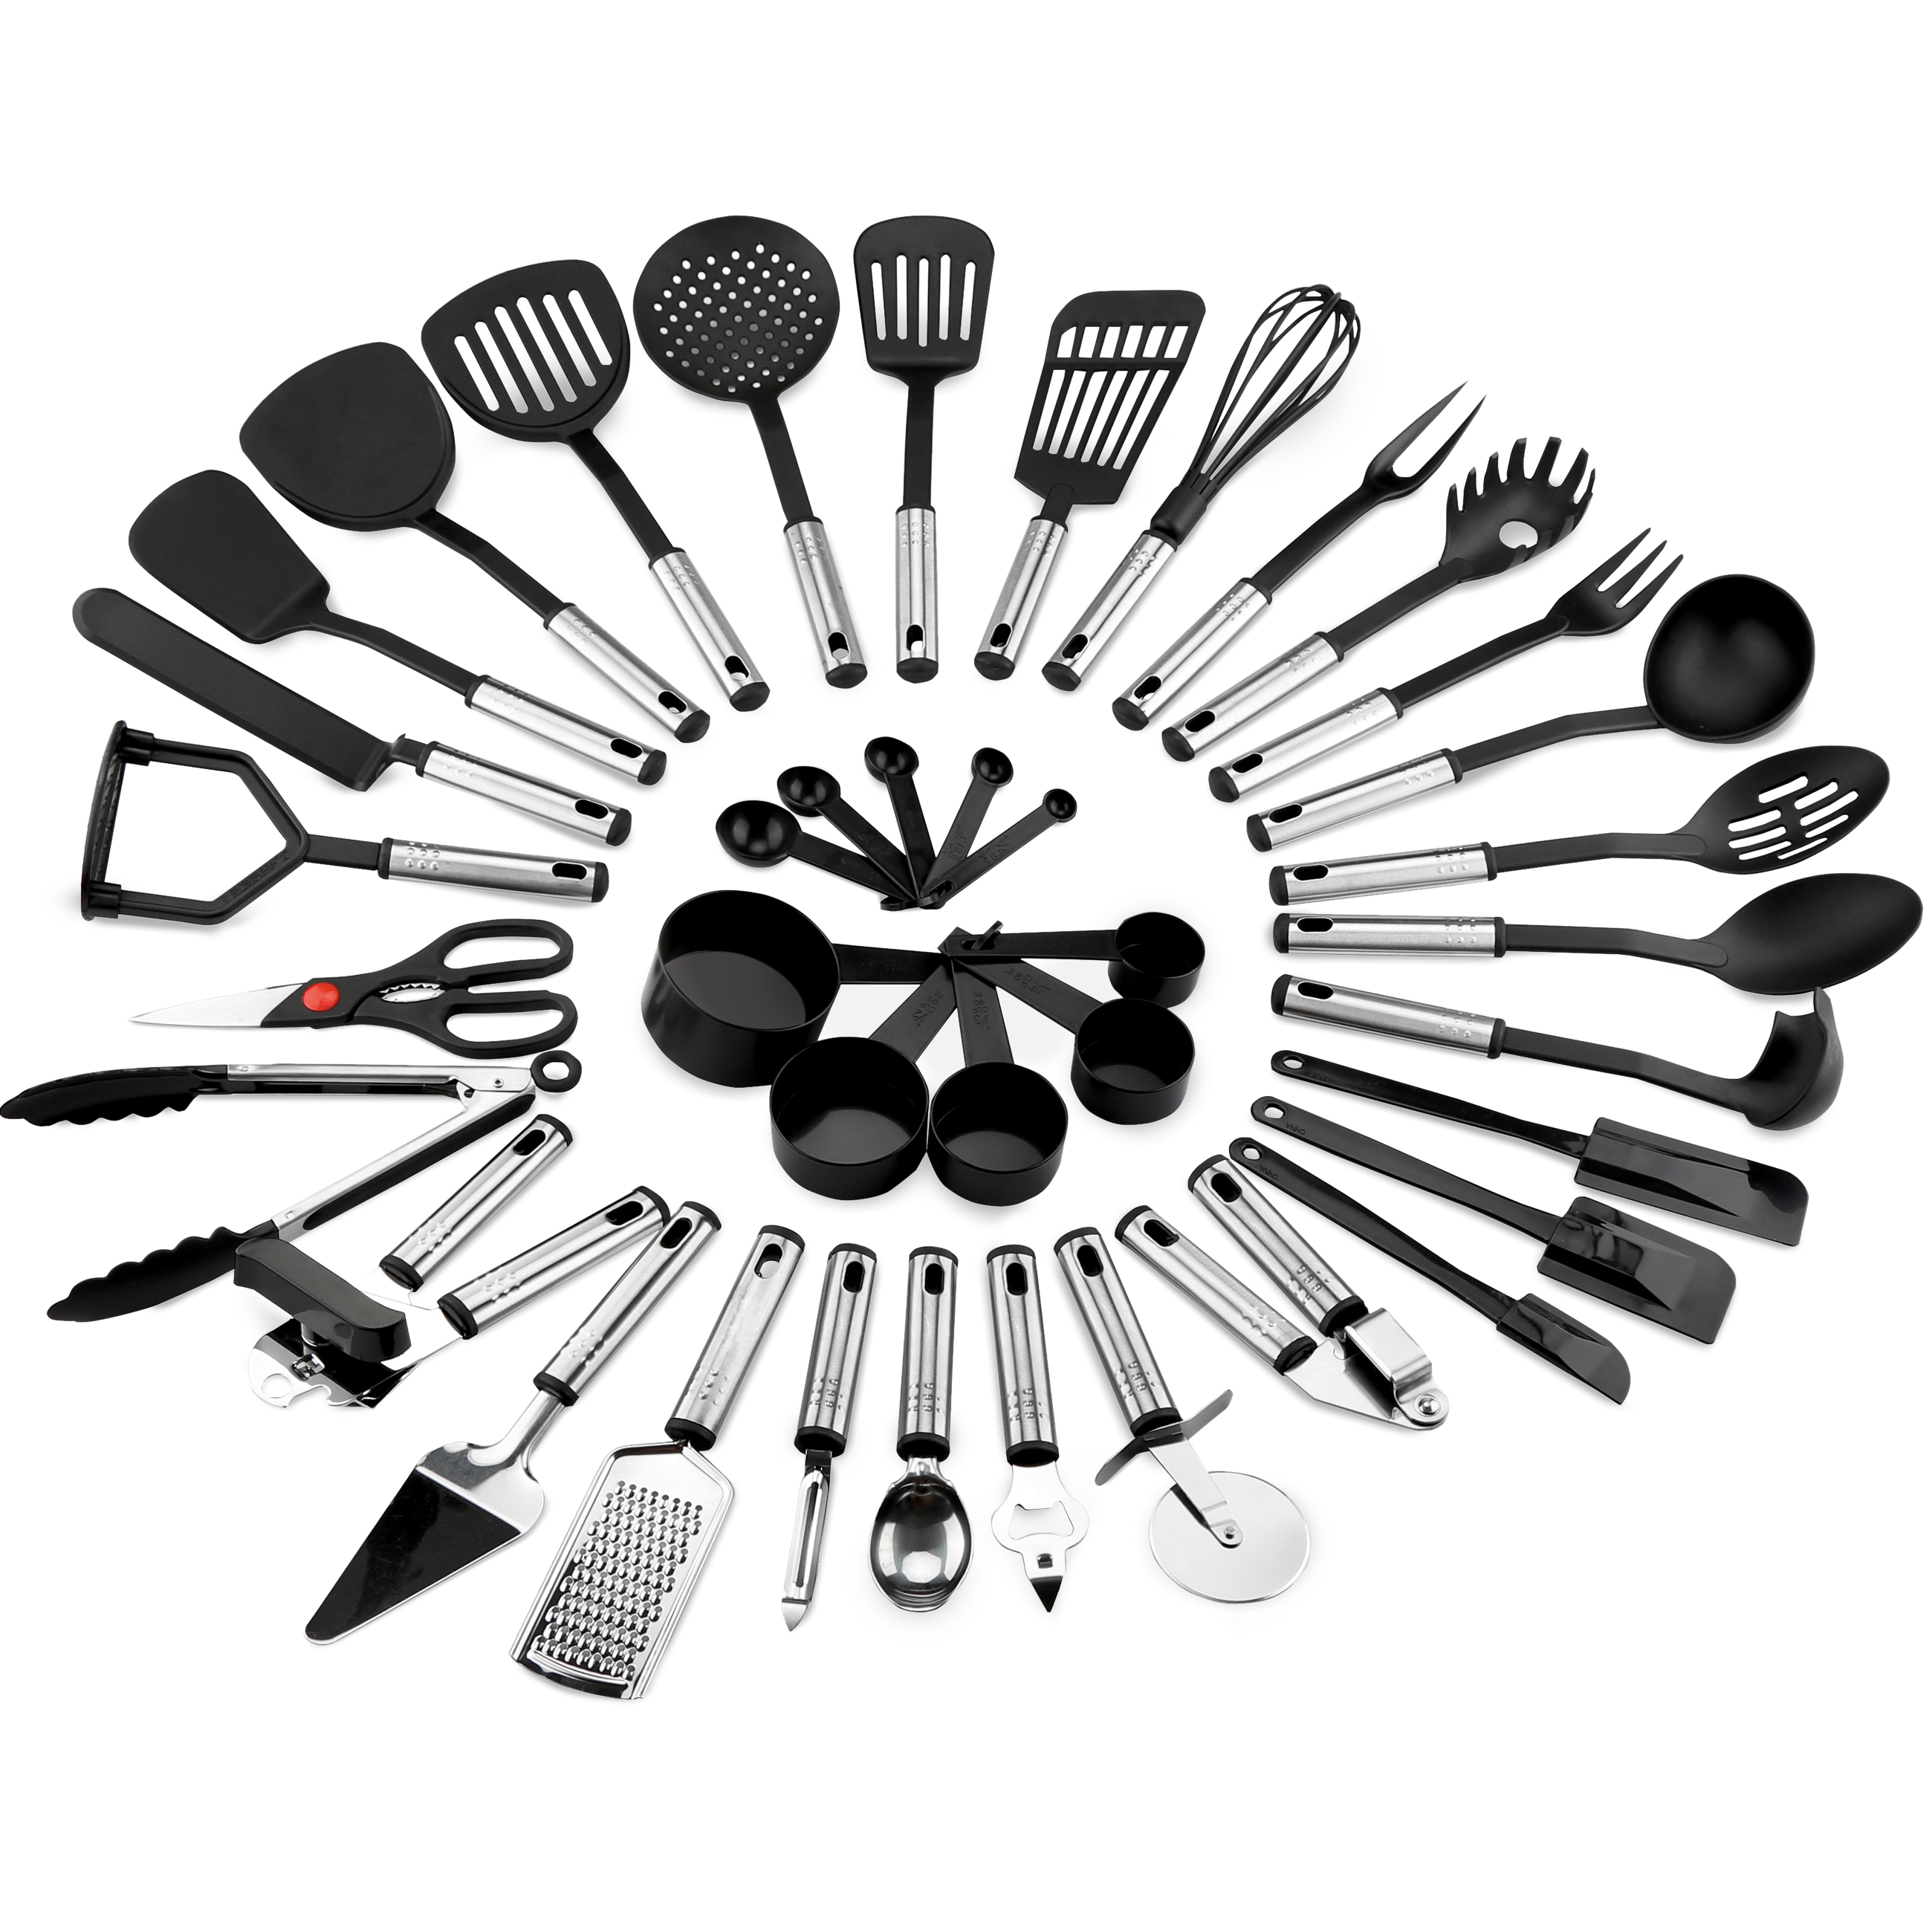 Best Choice Products 39-Piece Stainless Steel Cooking Utensil Set - Black/Silver